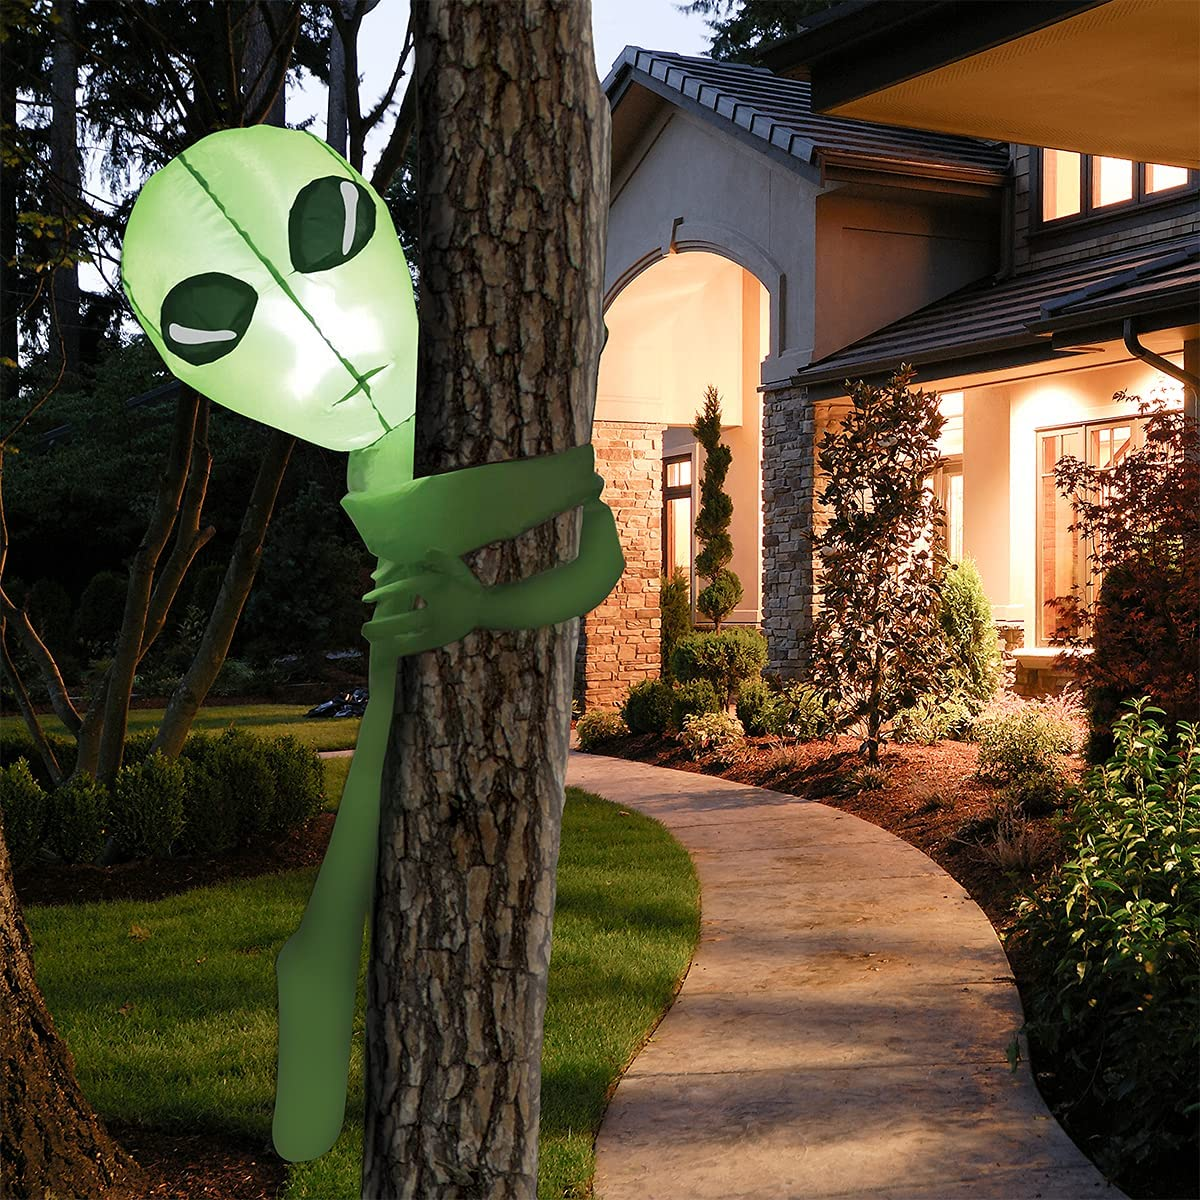 Joiedomi 4 FT Tall Halloween Inflatable Alien Tree Hugger Inflatable Yard Decoration with Build-in LEDs Blow Up Inflatables for Halloween Party Indoor, Outdoor, Yard, Garden, Lawn Decorations